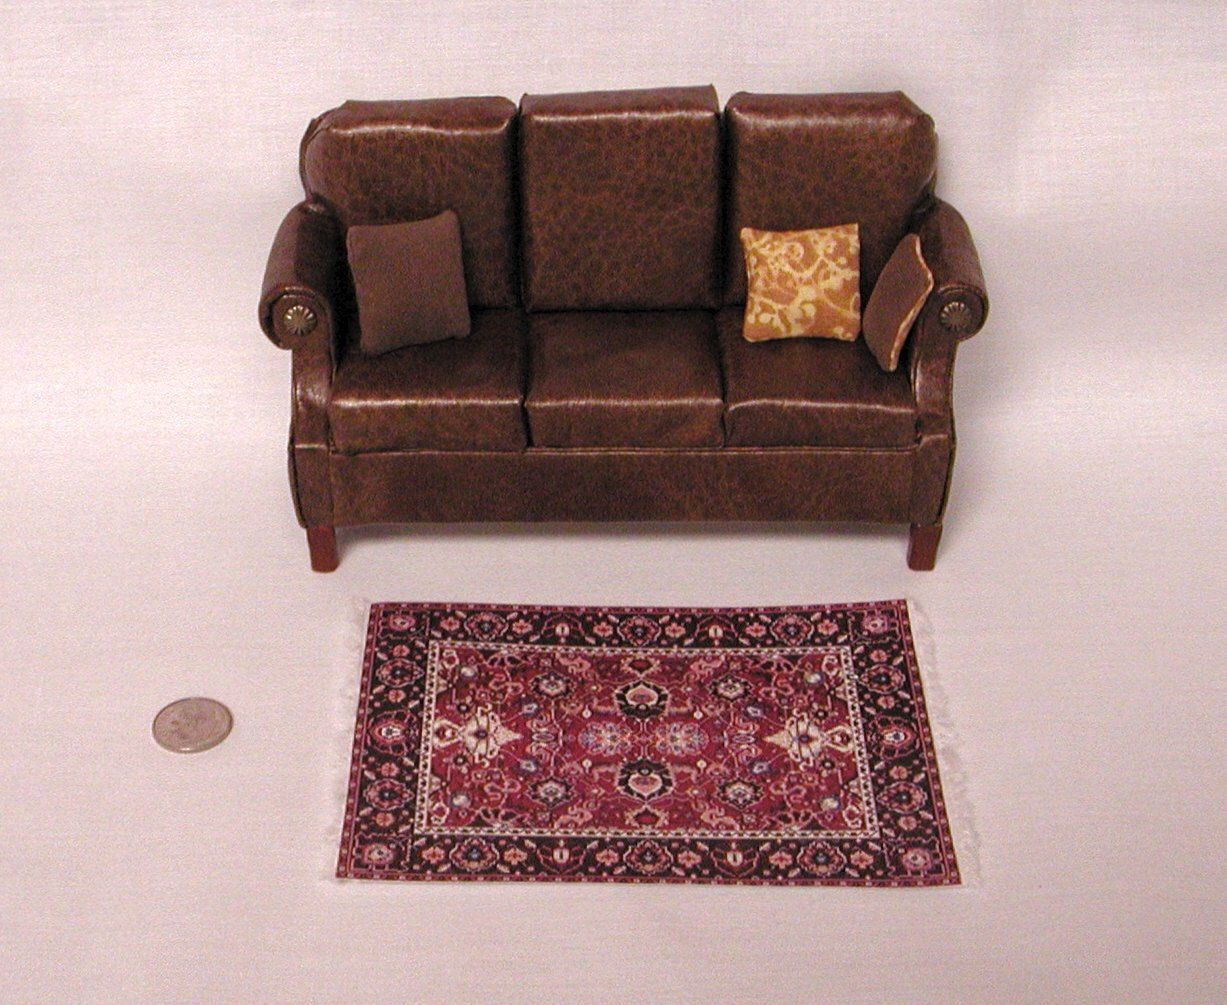 """Traditional brown """"leather"""" sofa & 3 throw pillows, bronze circle ornaments. 1 to 12 dollhouse scale miniature.  Made in the USA. by AuntElliesMiniatures on Etsy https://www.etsy.com/listing/166746501/traditional-brown-leather-sofa-3-throw"""